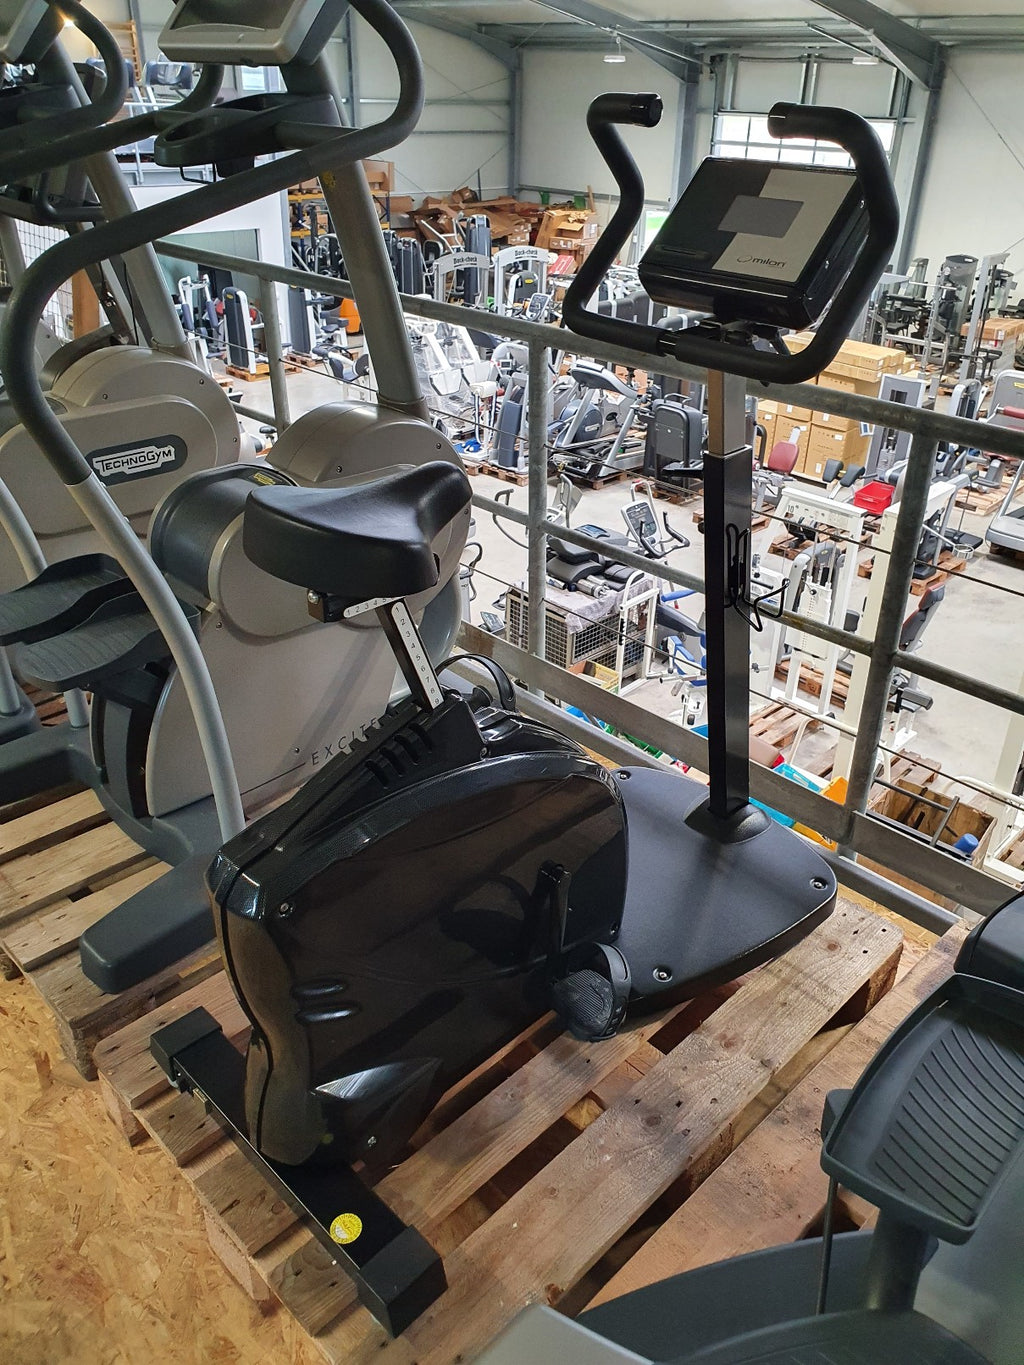 MIHA MILON Club Test Bike Fahrrad Ergometer Physio Fitness Studio Gym